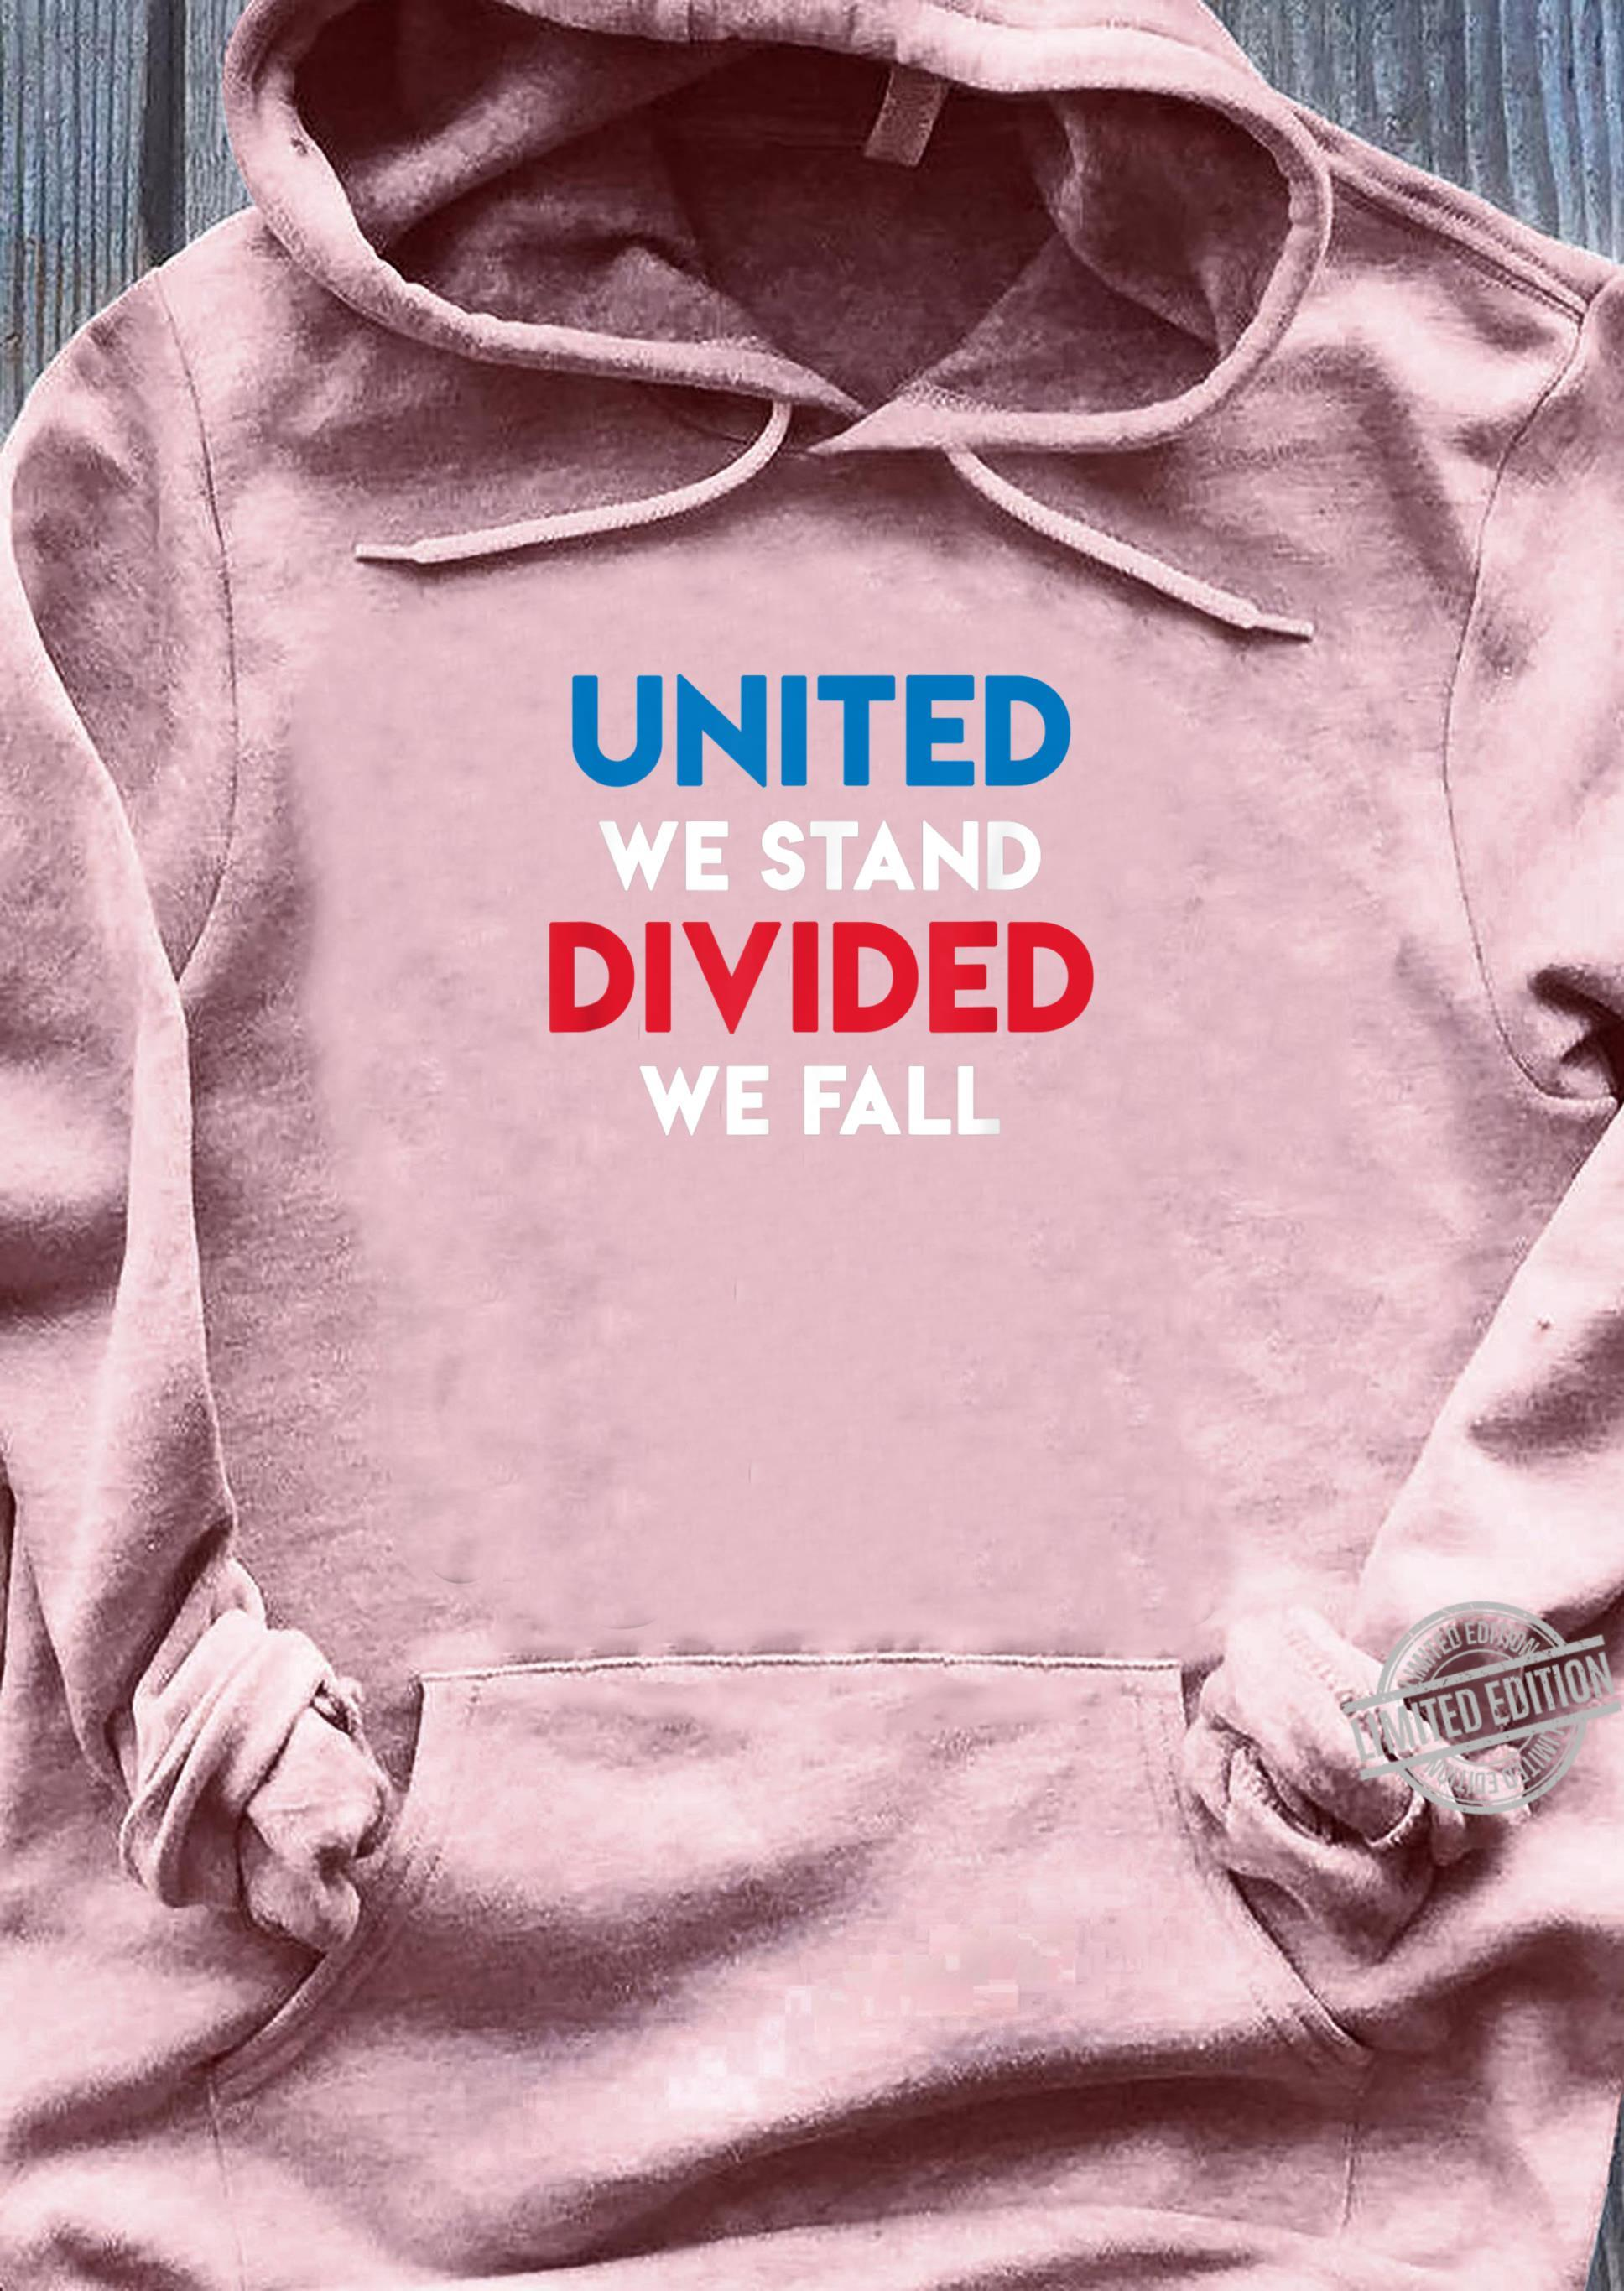 United We Stand Divided We Fall Black Lives Matter, Police Shirt sweater